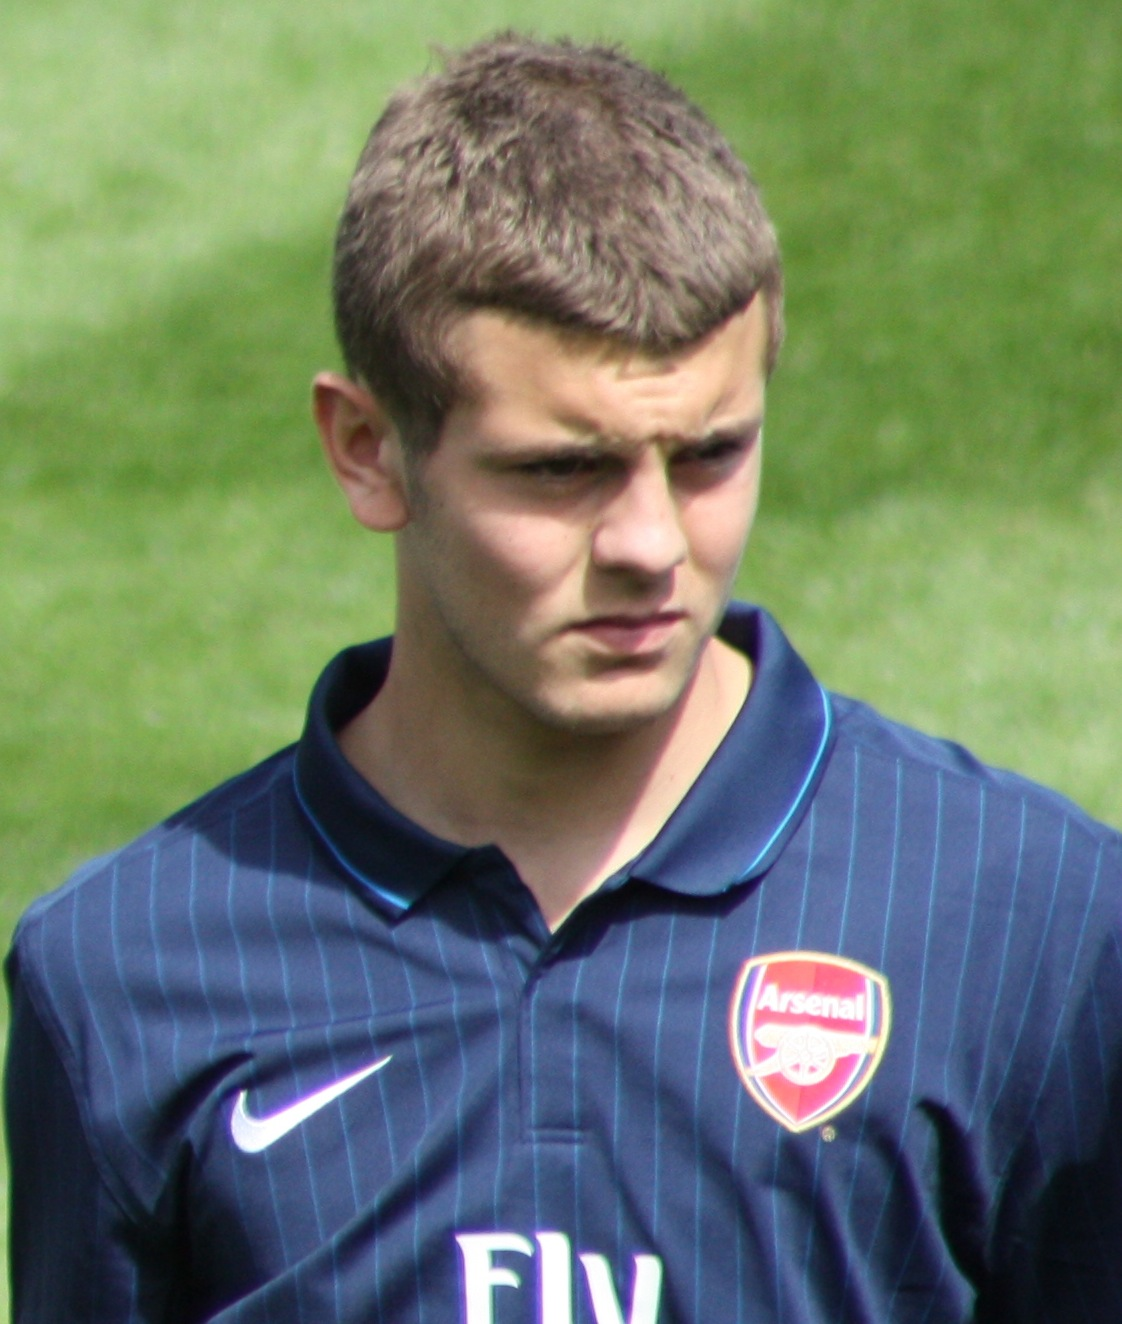 Jack Wilshere Cropped Wikipedia The Free Encyclopedia